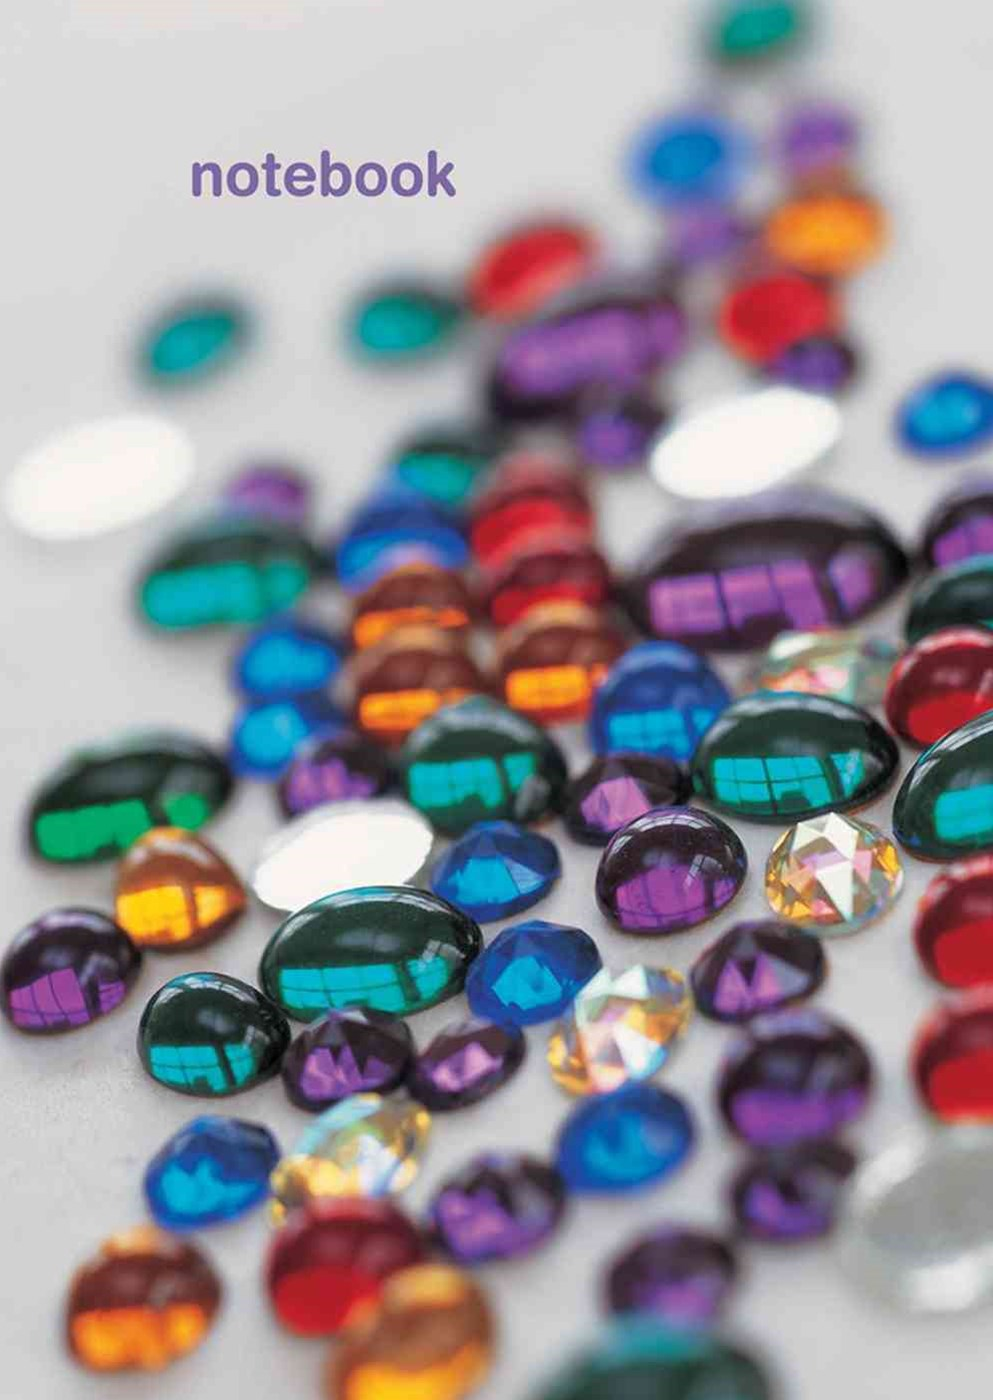 Notebook - Glass Beads